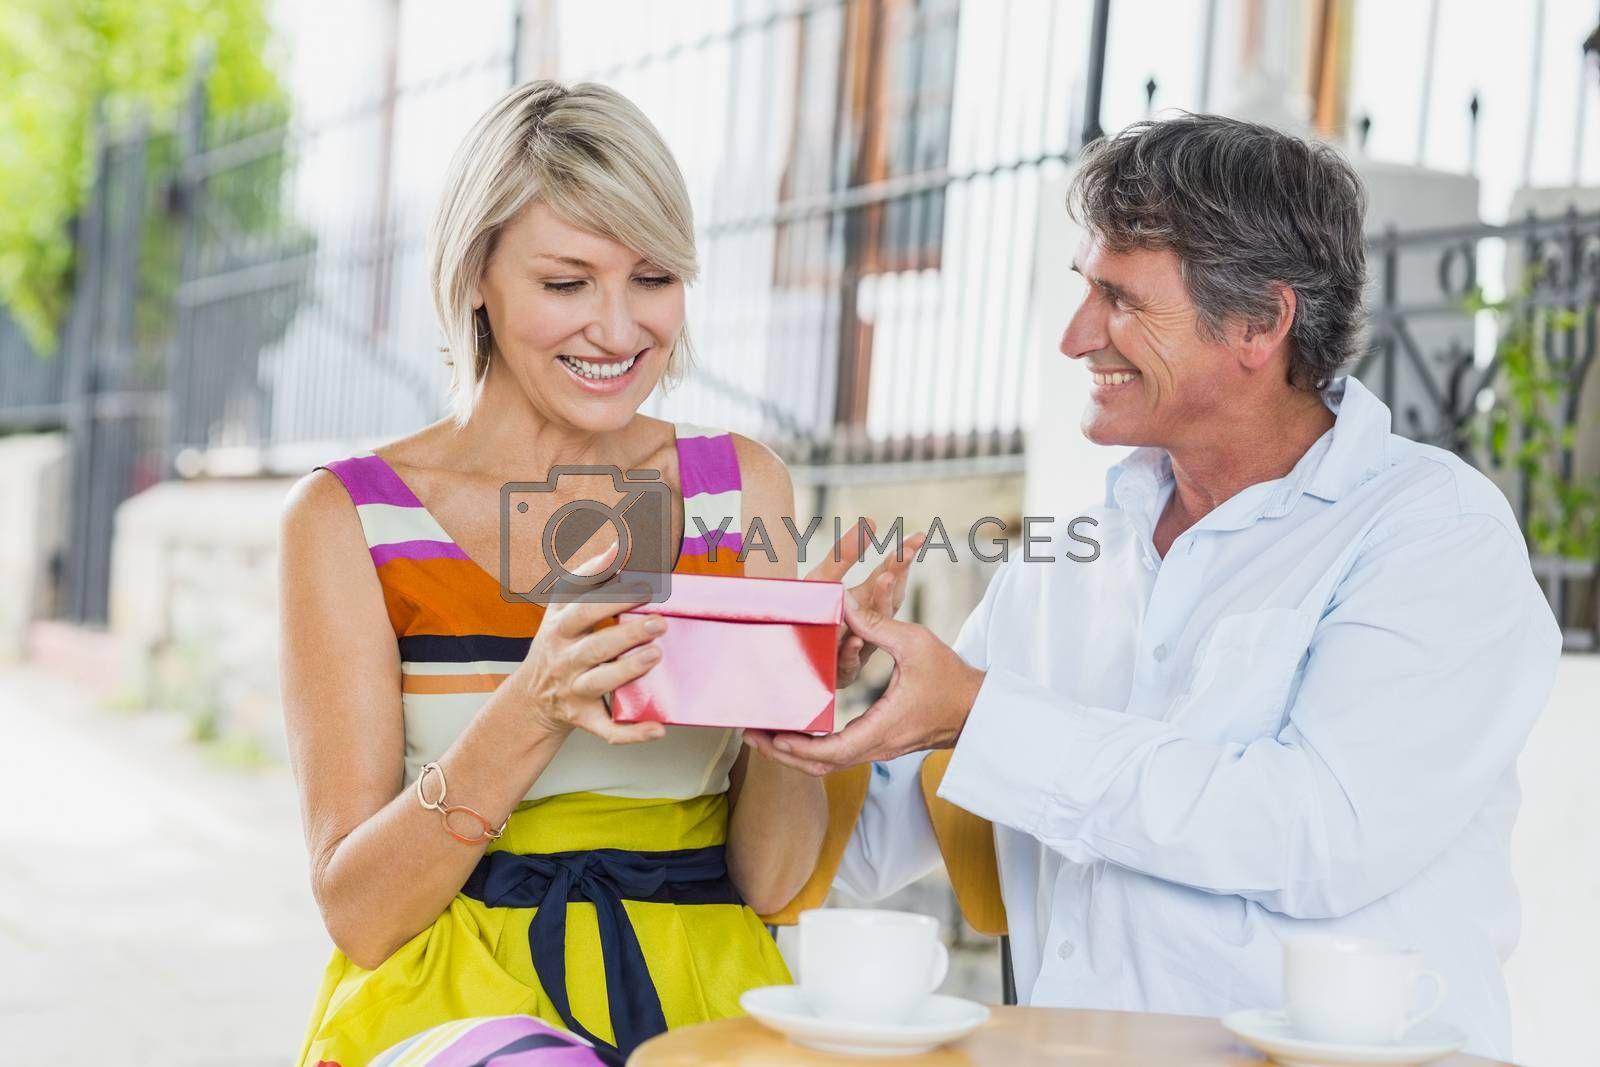 Woman receiving gift from man while sitting at cafe